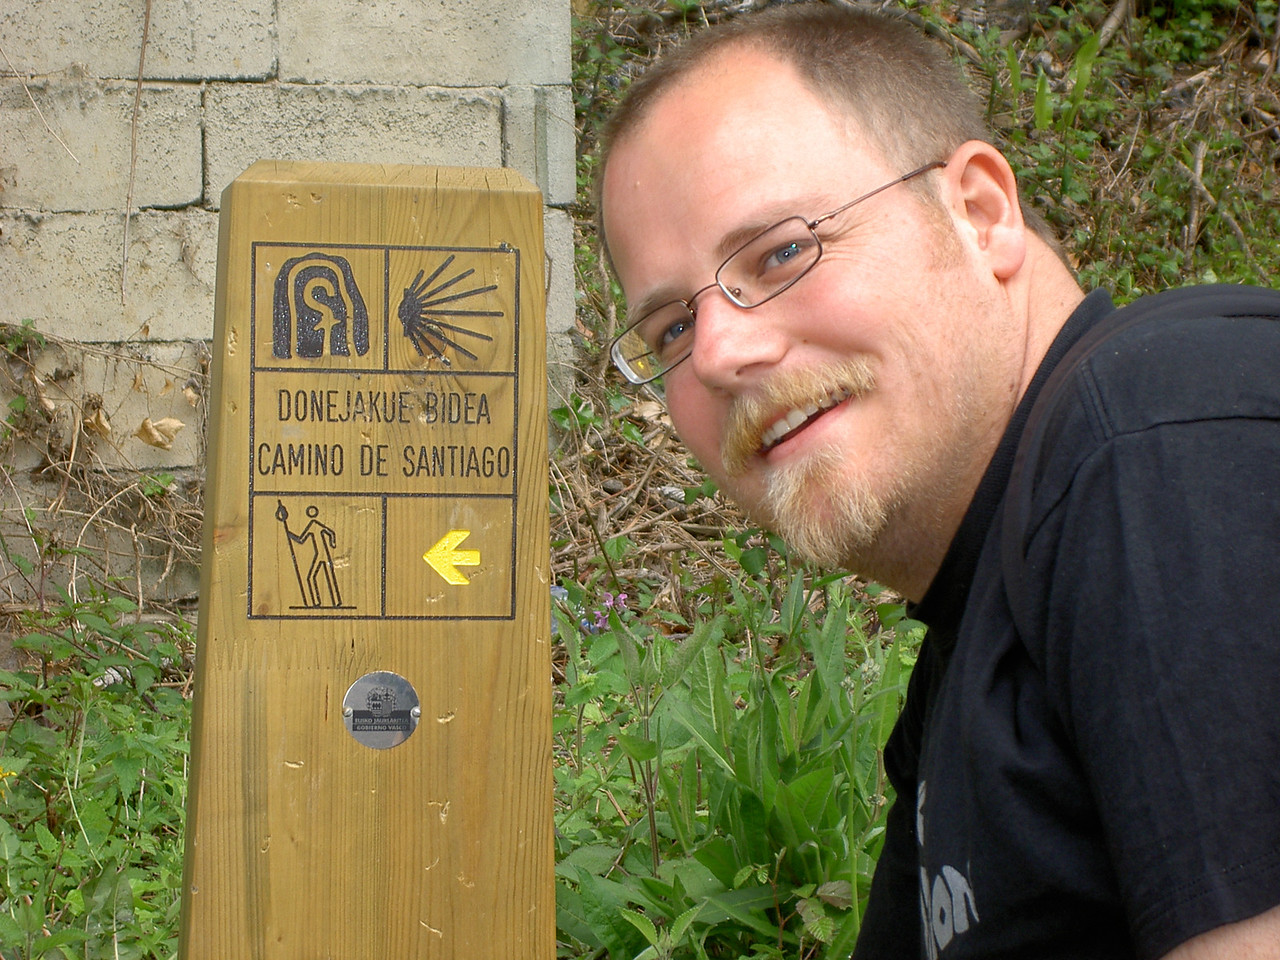 See, we did the Camino de Santiago. Well, about 100m of it.